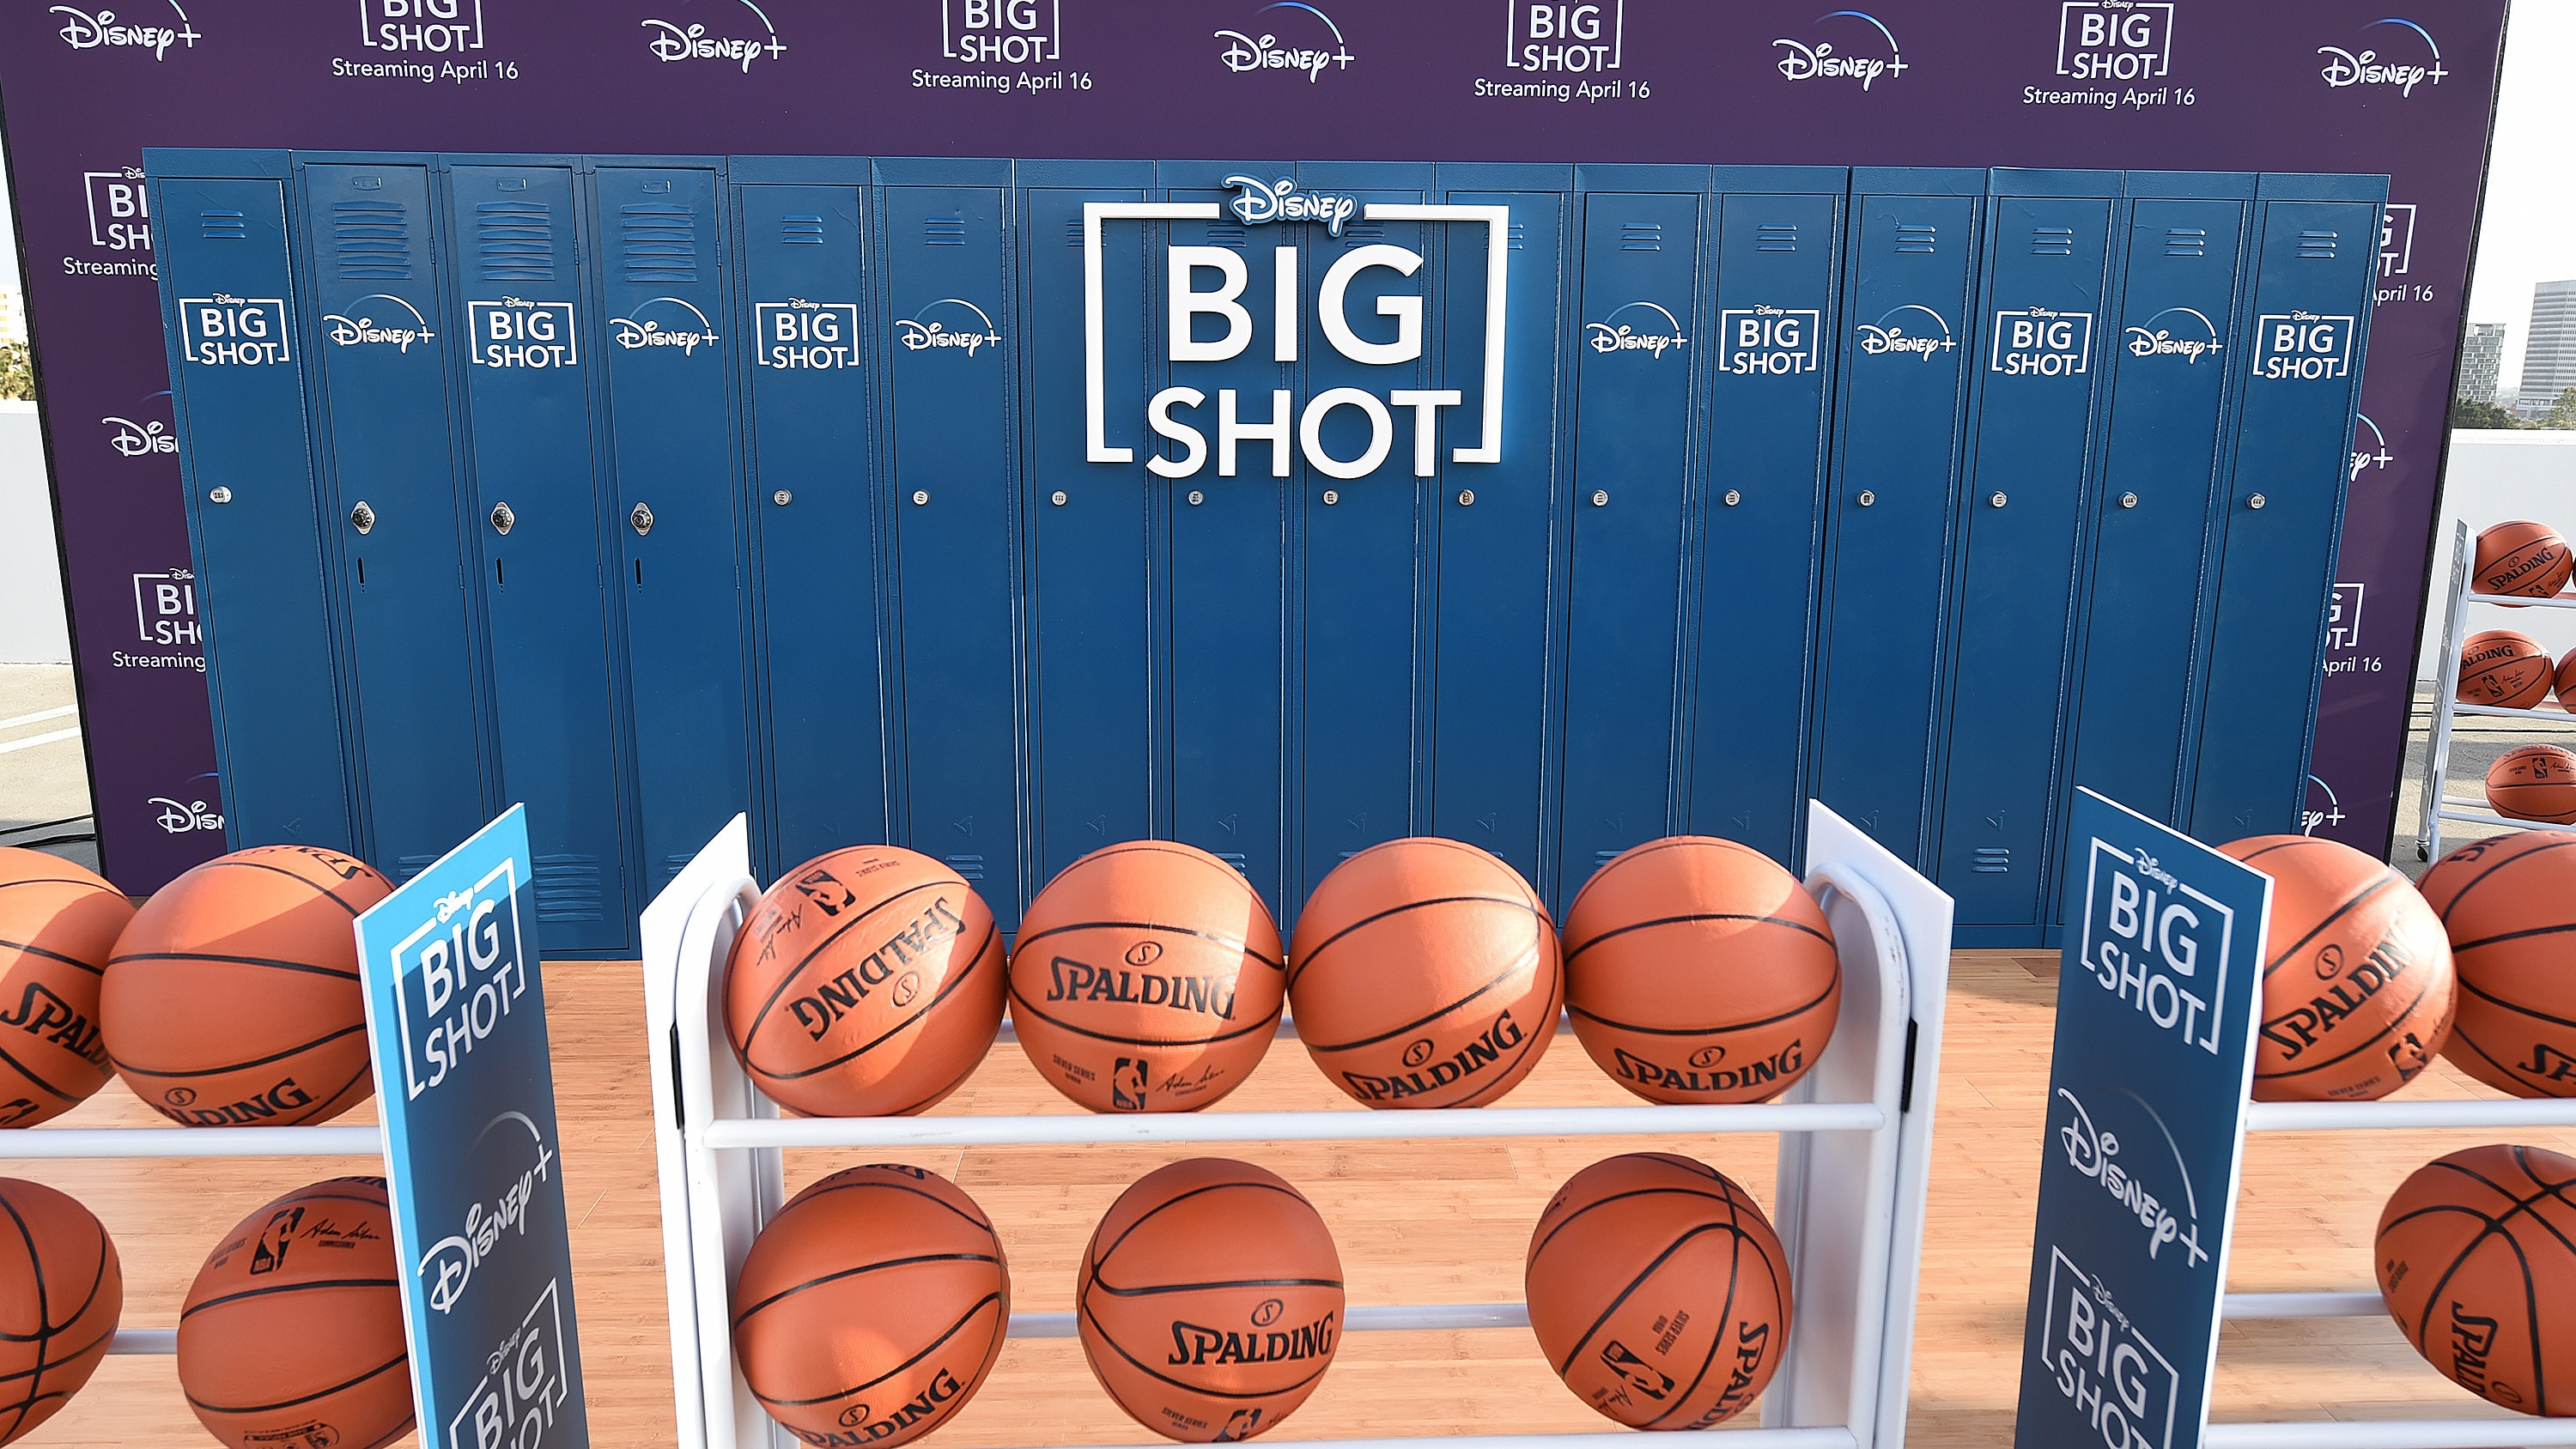 LOS ANGELES, CA - APRIL 14: Disney + hosted the world premiere drive-in screening of the original series ìBIG SHOTî at The Grove in Los Angeles, California on April 14, 2021. (Photo by Frank Micelotta/Disney +/PictureGroup)